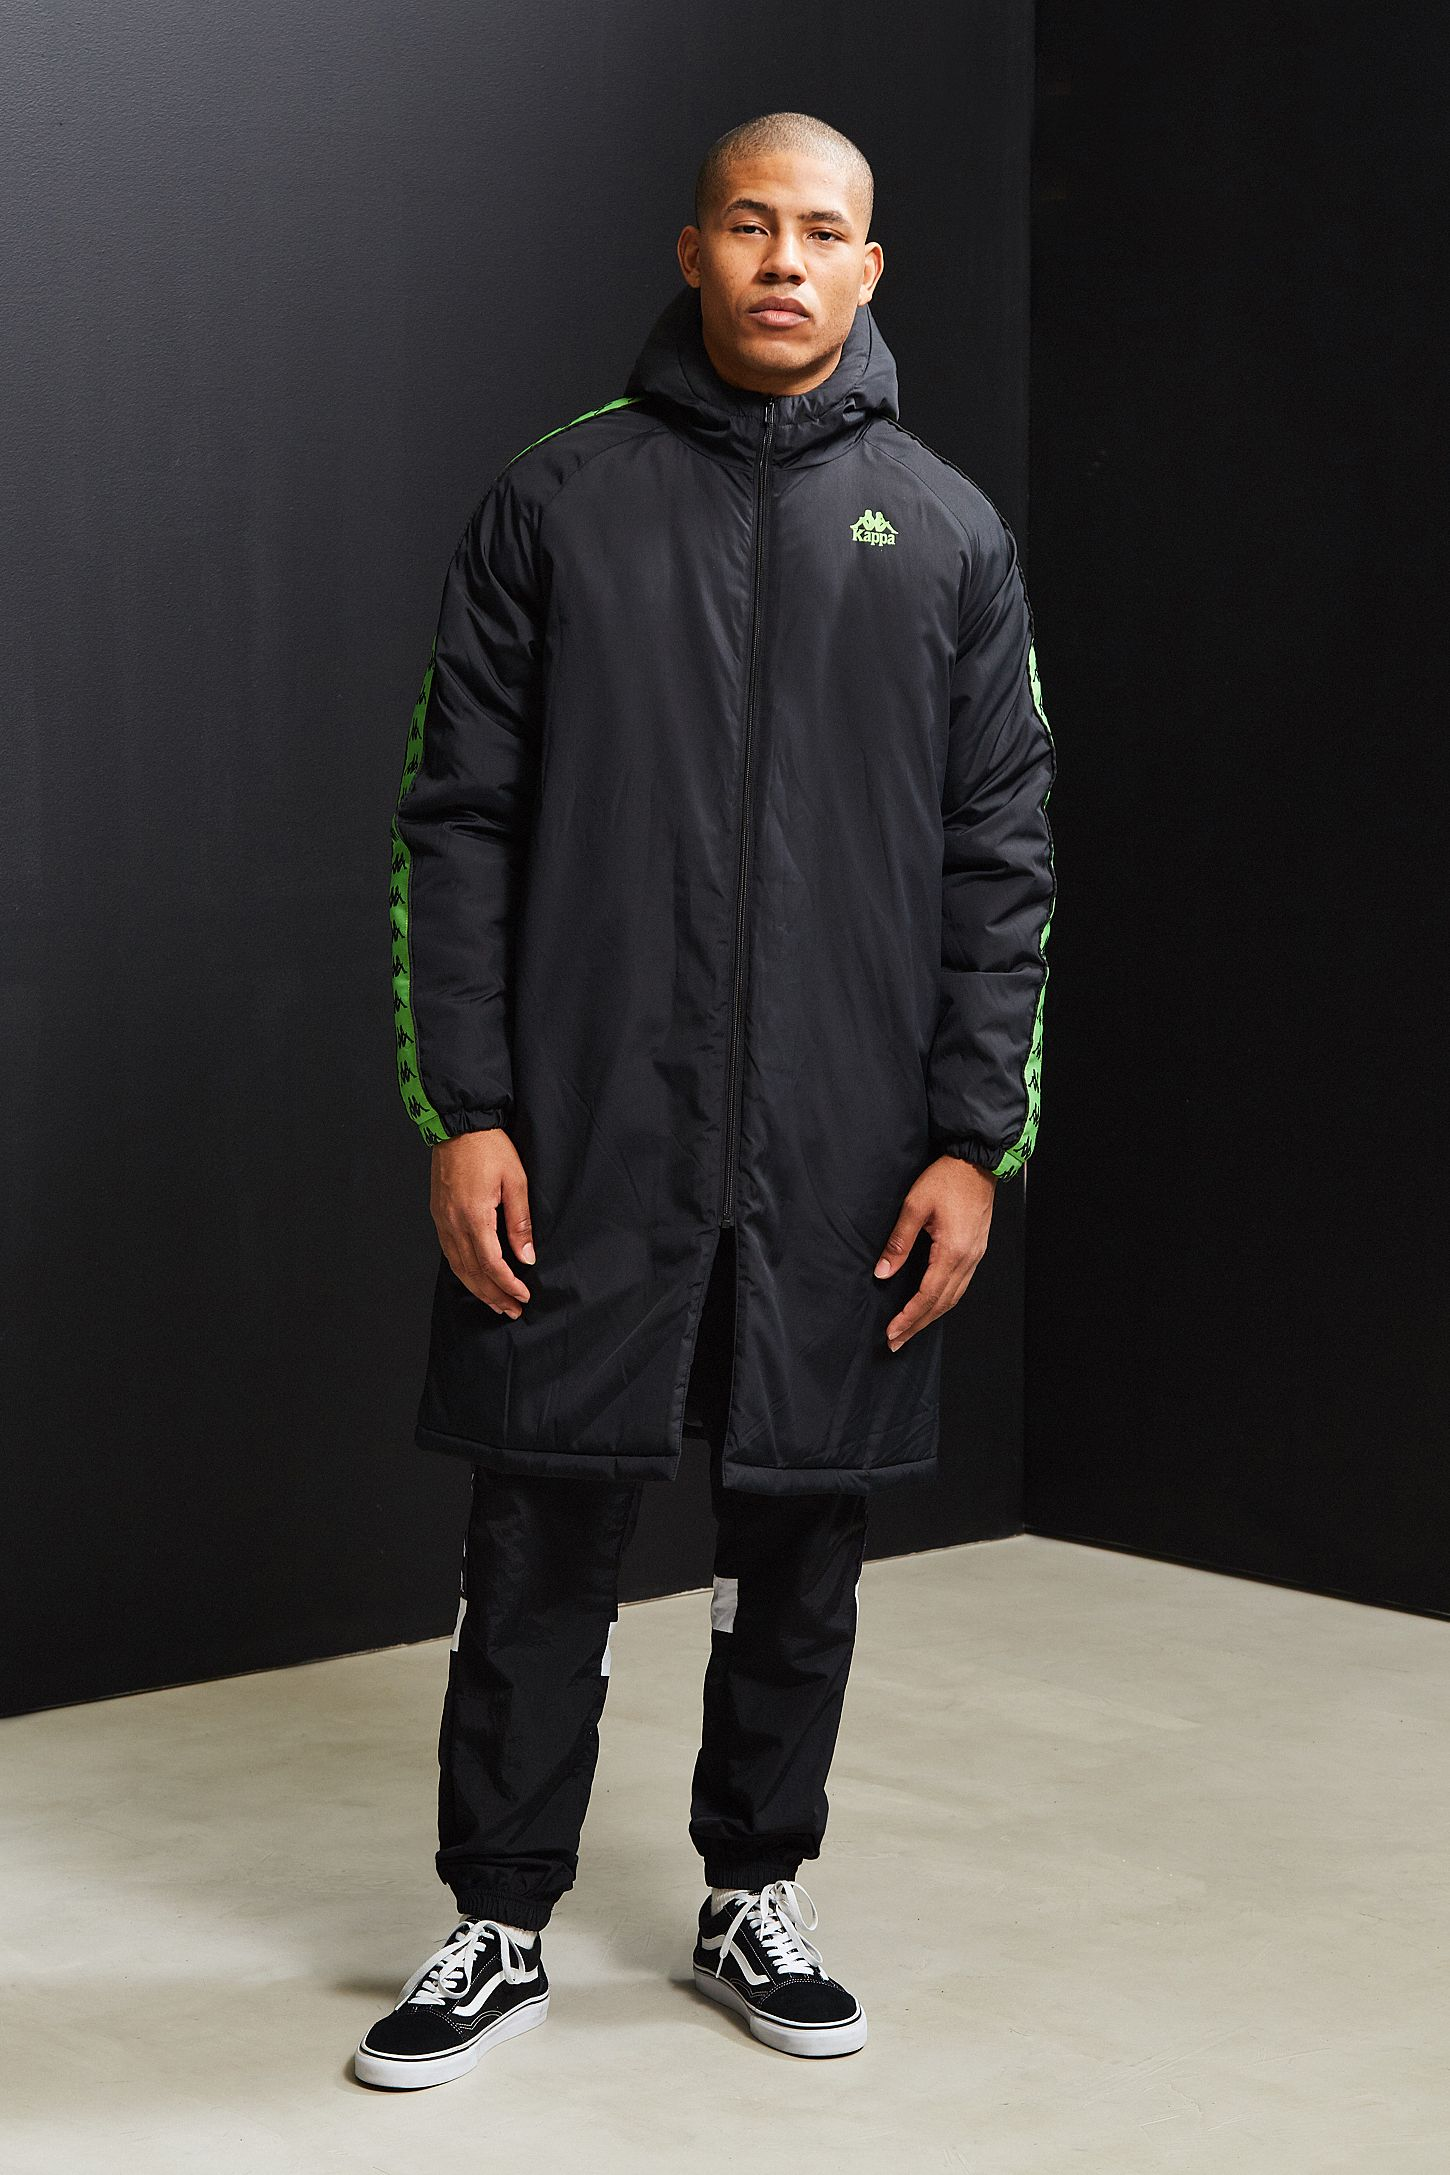 Kappa X UO Hooded Parka Jacket | Urban Outfitters